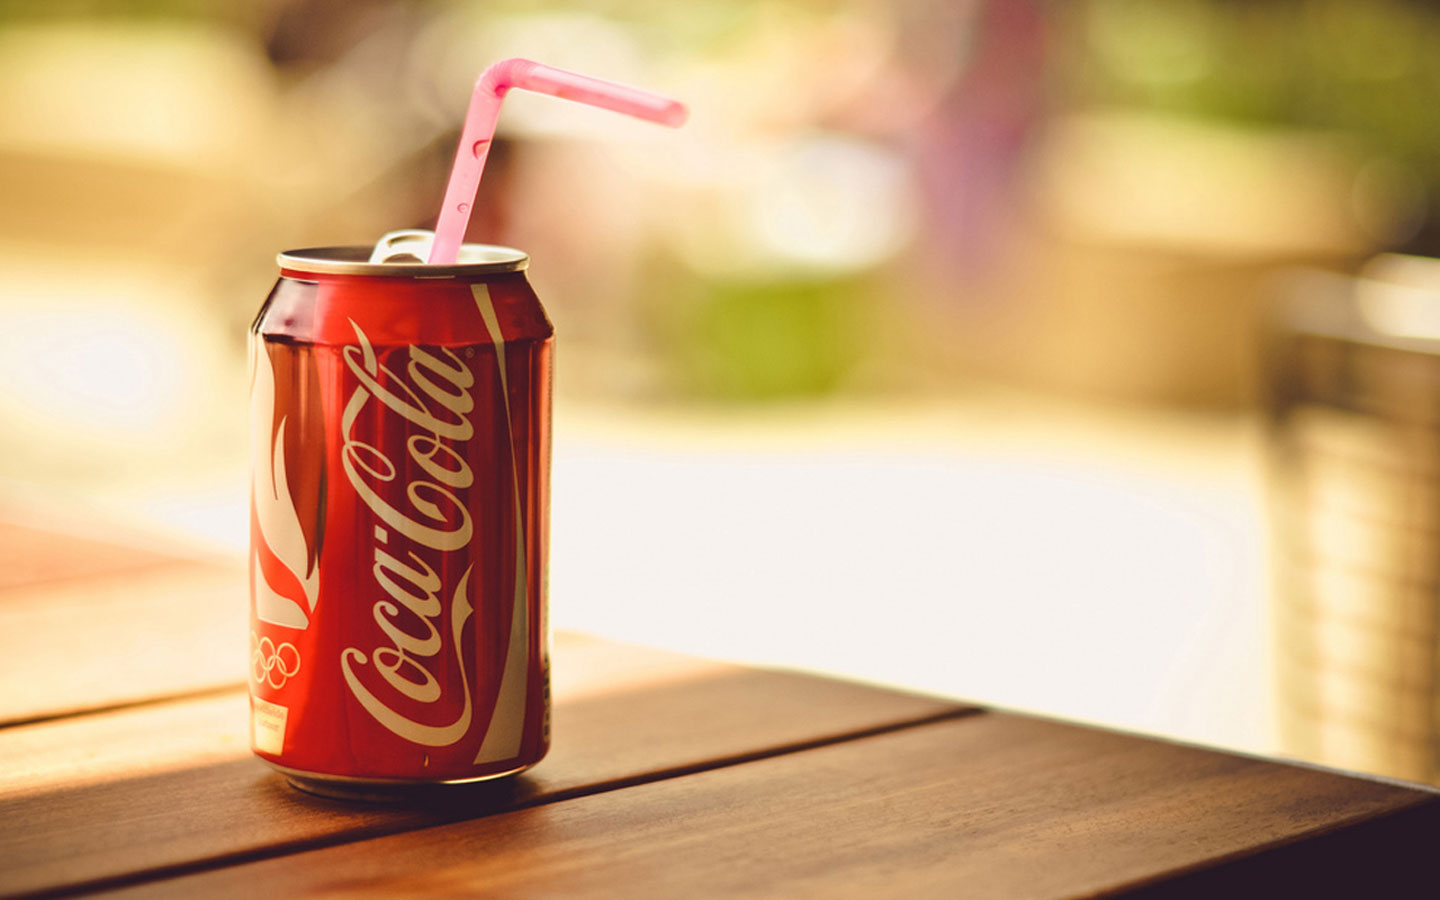 HD Wallpaper Coca Cola Can With Straw Wallpapershuntcom By 1440x900